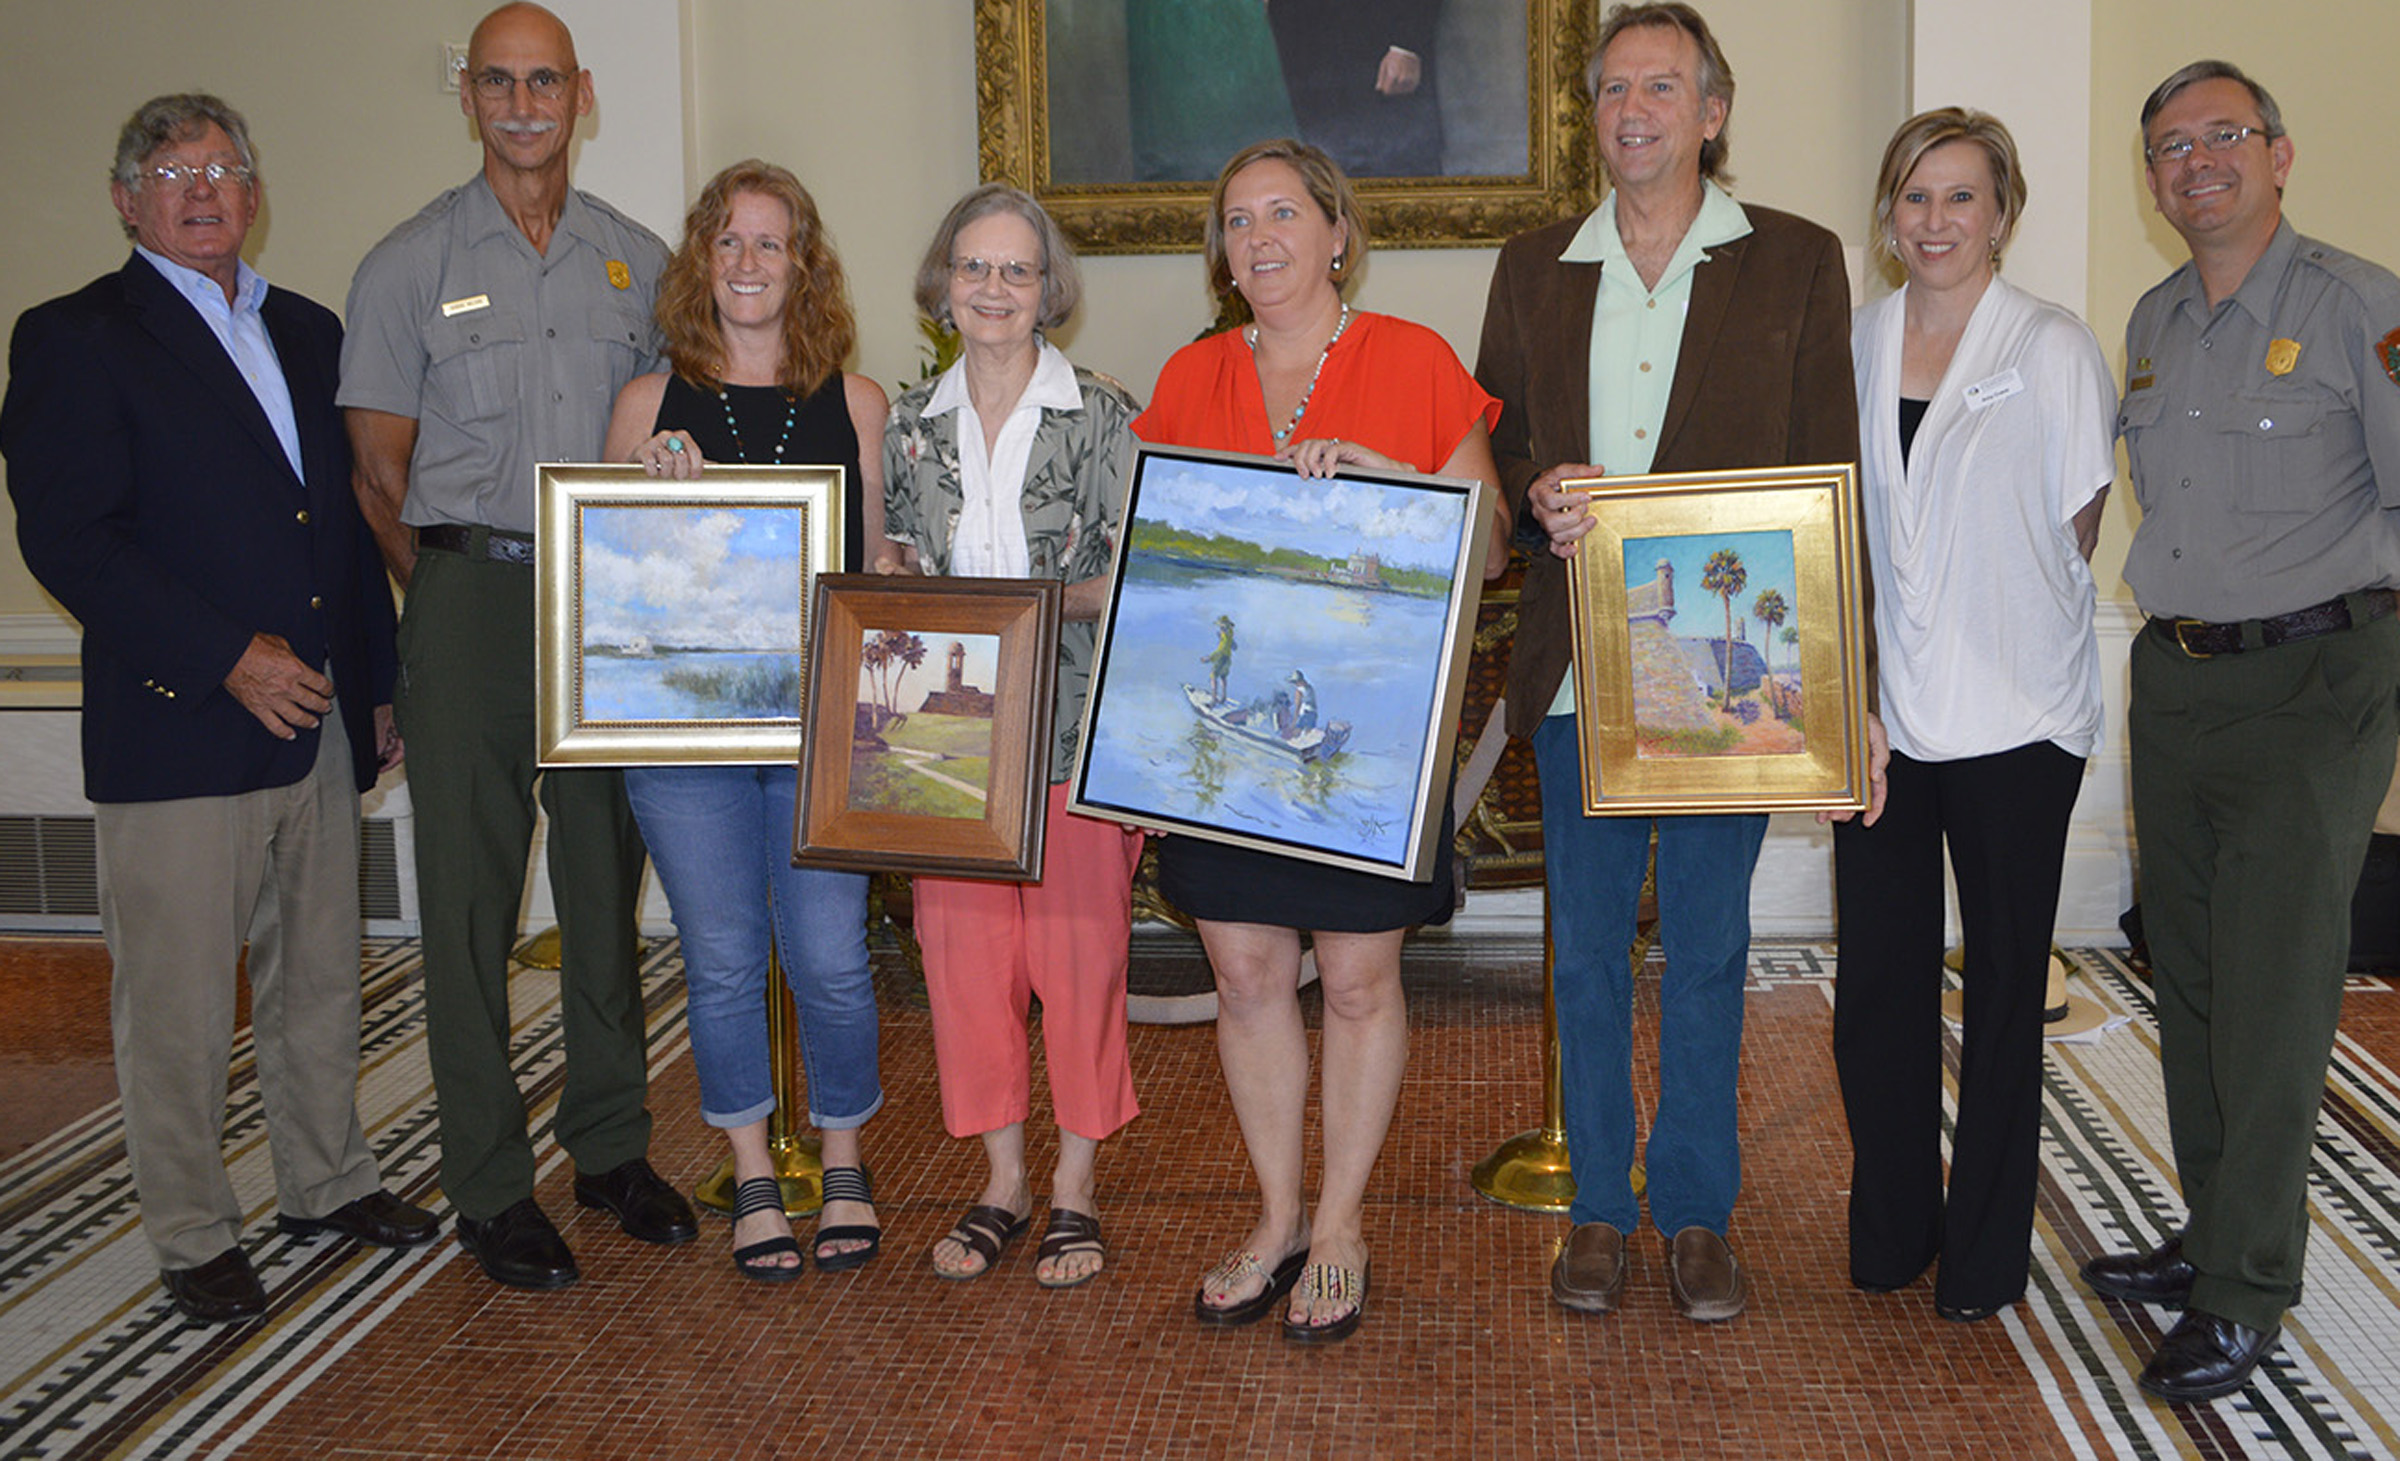 Five artists received awards as part of the Find Your Park Plein Air juried show, pictured from left to right Andrew Witt, executive director of St. Johns Cultural Council; Gordon Wilson, superintendent of Castillo de San Marcos and Fort Matanzas National Monuments; Lyn Asselta, best of show award recipient; Gail Beveridge, best of media: painting award recipient; Claire Kendrick, honorable mention award recipient; William Lurcott, best of media: pastel award recipient; Amy Crane, program director at The Community Foundation for Northeast Florida; and Steven Roberts, chief of interpretation and education at Castillo de San Marcos and Fort Matanzas National Monuments.